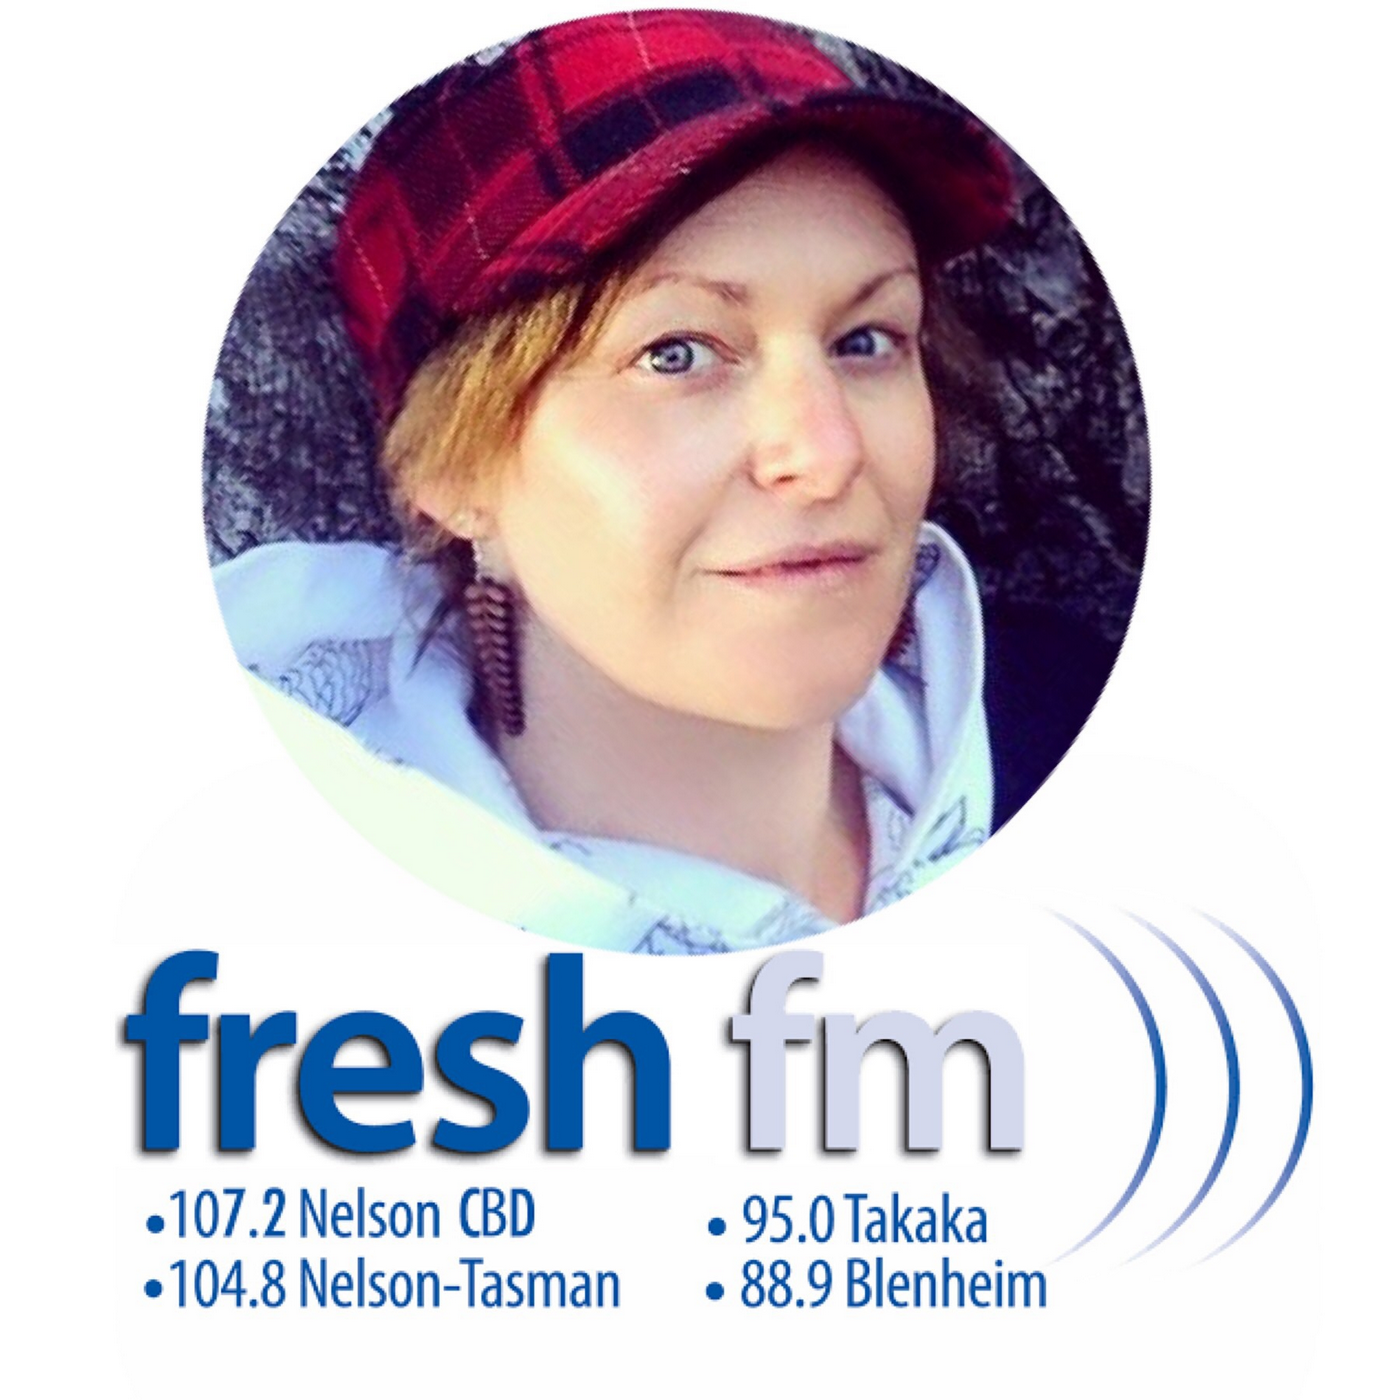 https://cdn.accessradio.org/StationFolder/freshfm/Images/Wendy---Fresh-Start.png